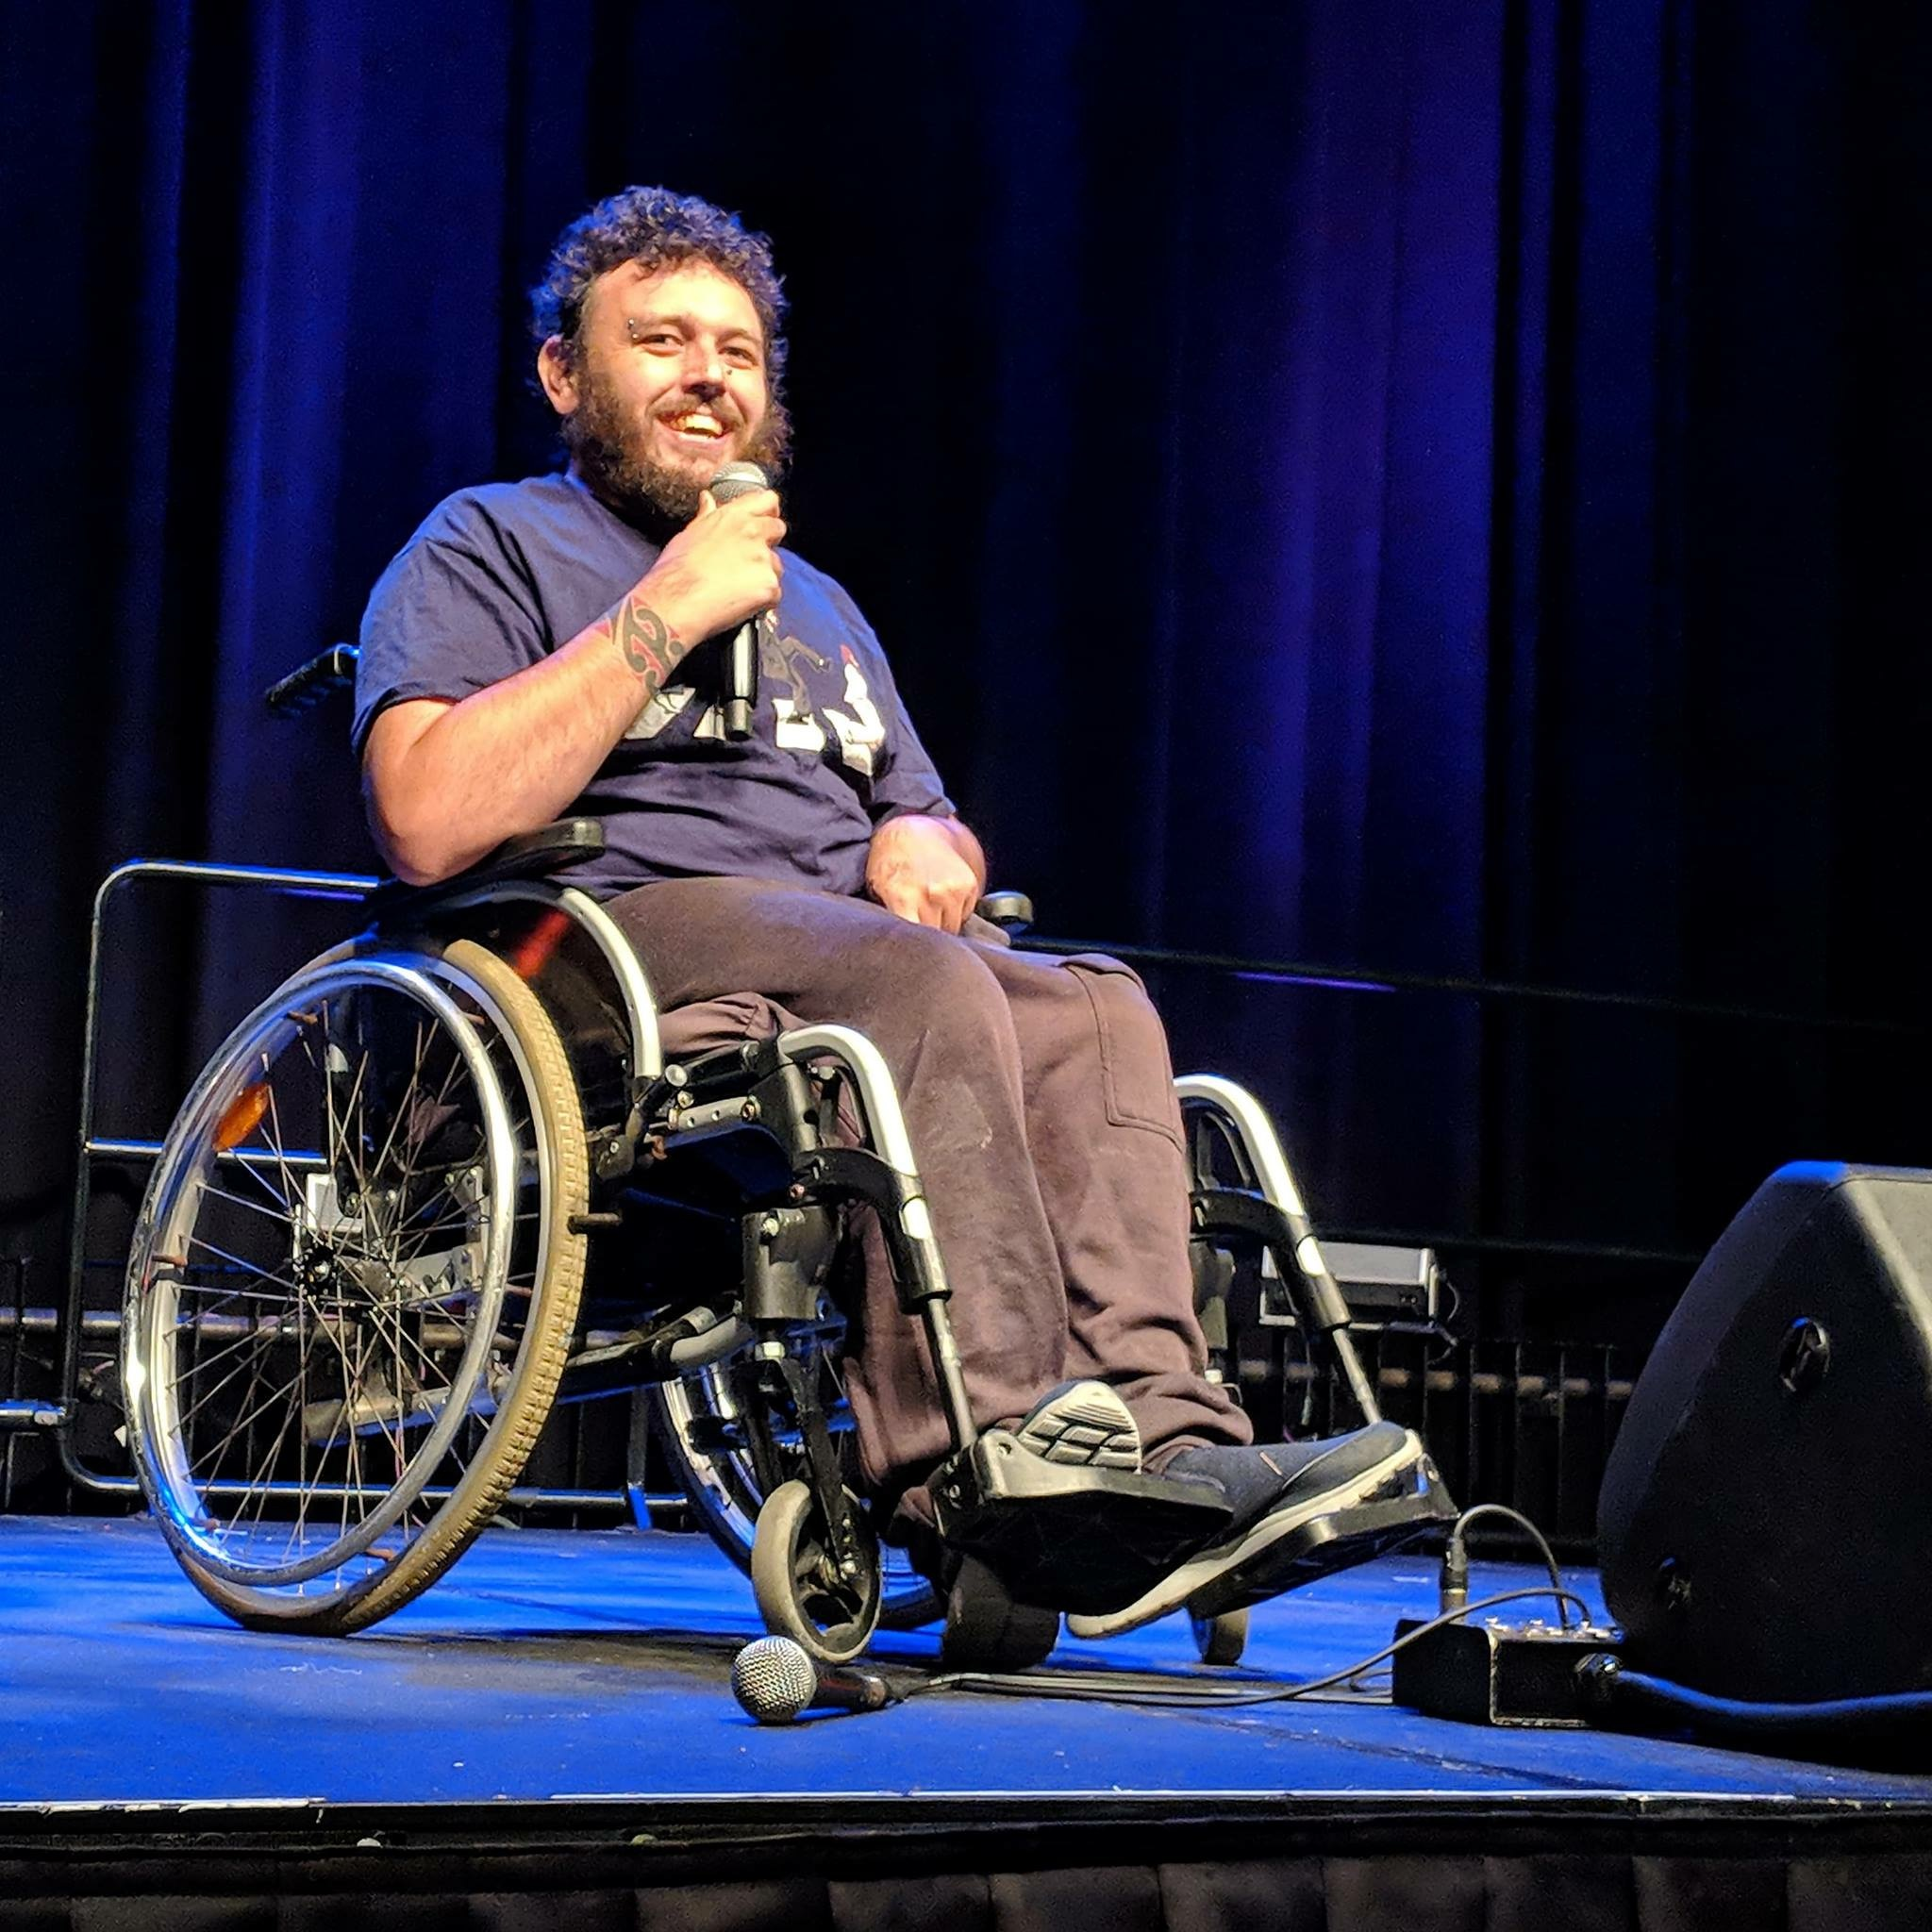 Richie pictured onstage in his wheelchair, holding a microphone and smiling